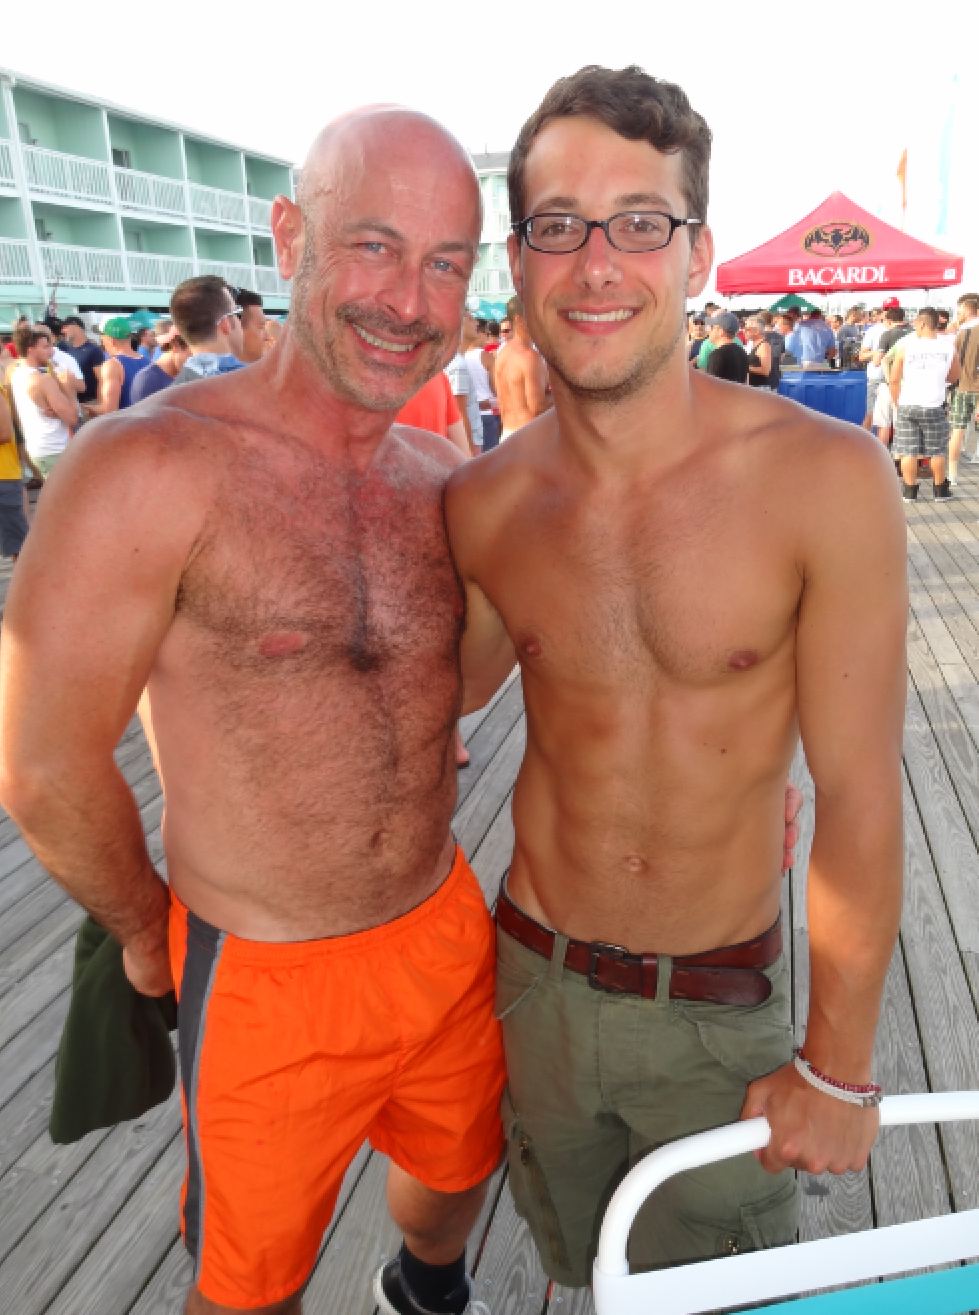 Tiger woods redhead girlfriend-1550